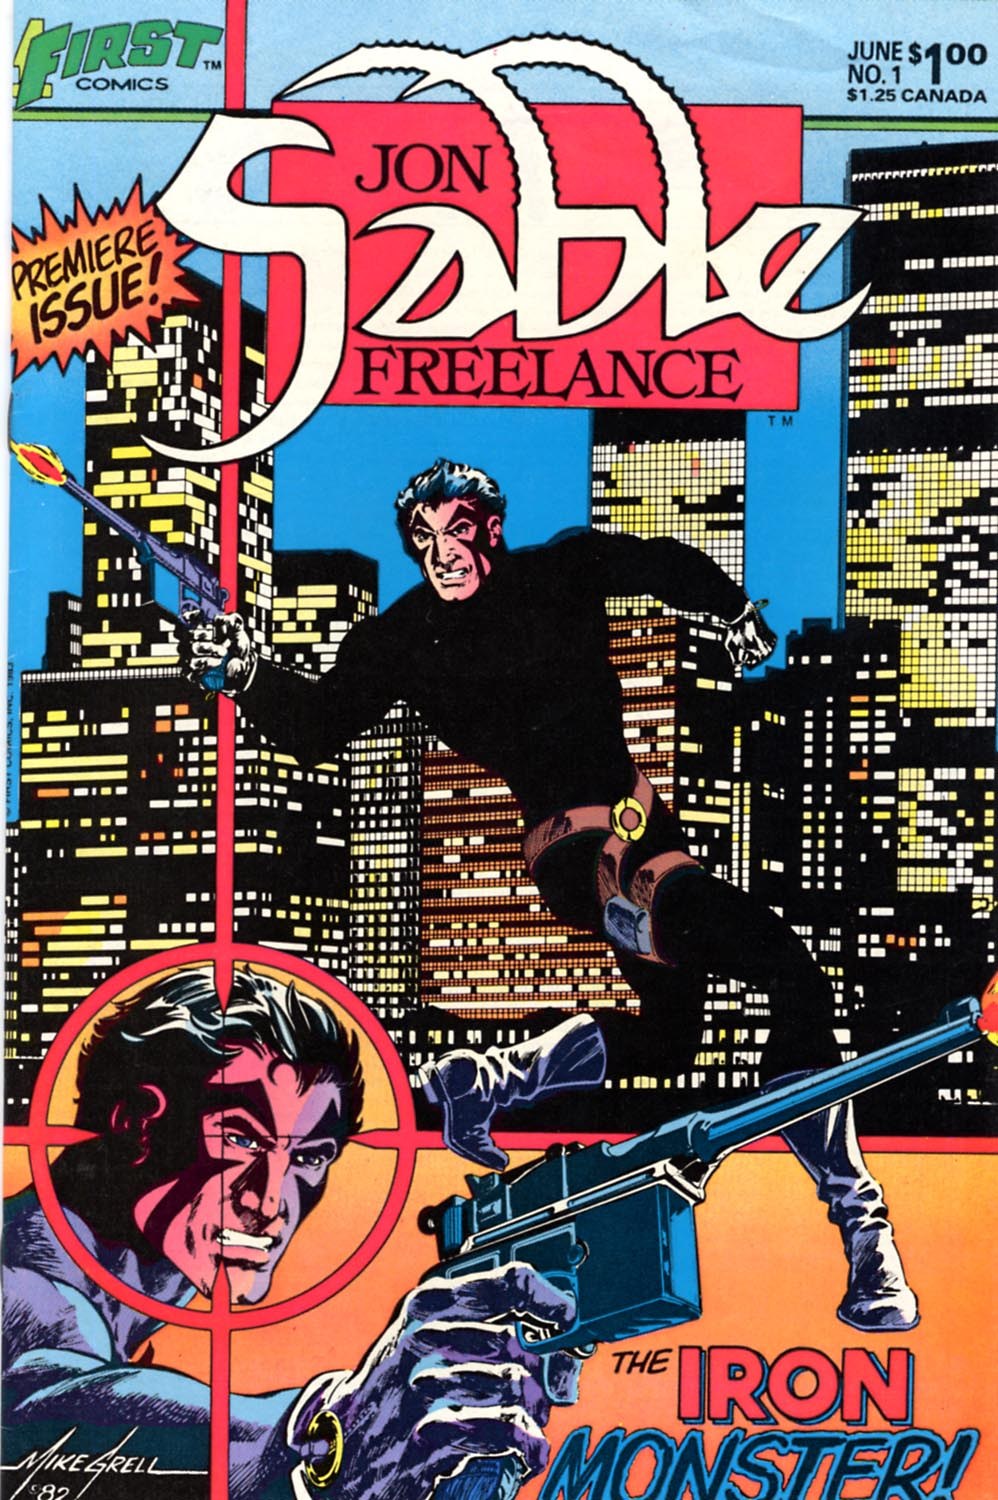 Jon Sable_ Freelance (1983) #1, cover by Mike Grell.